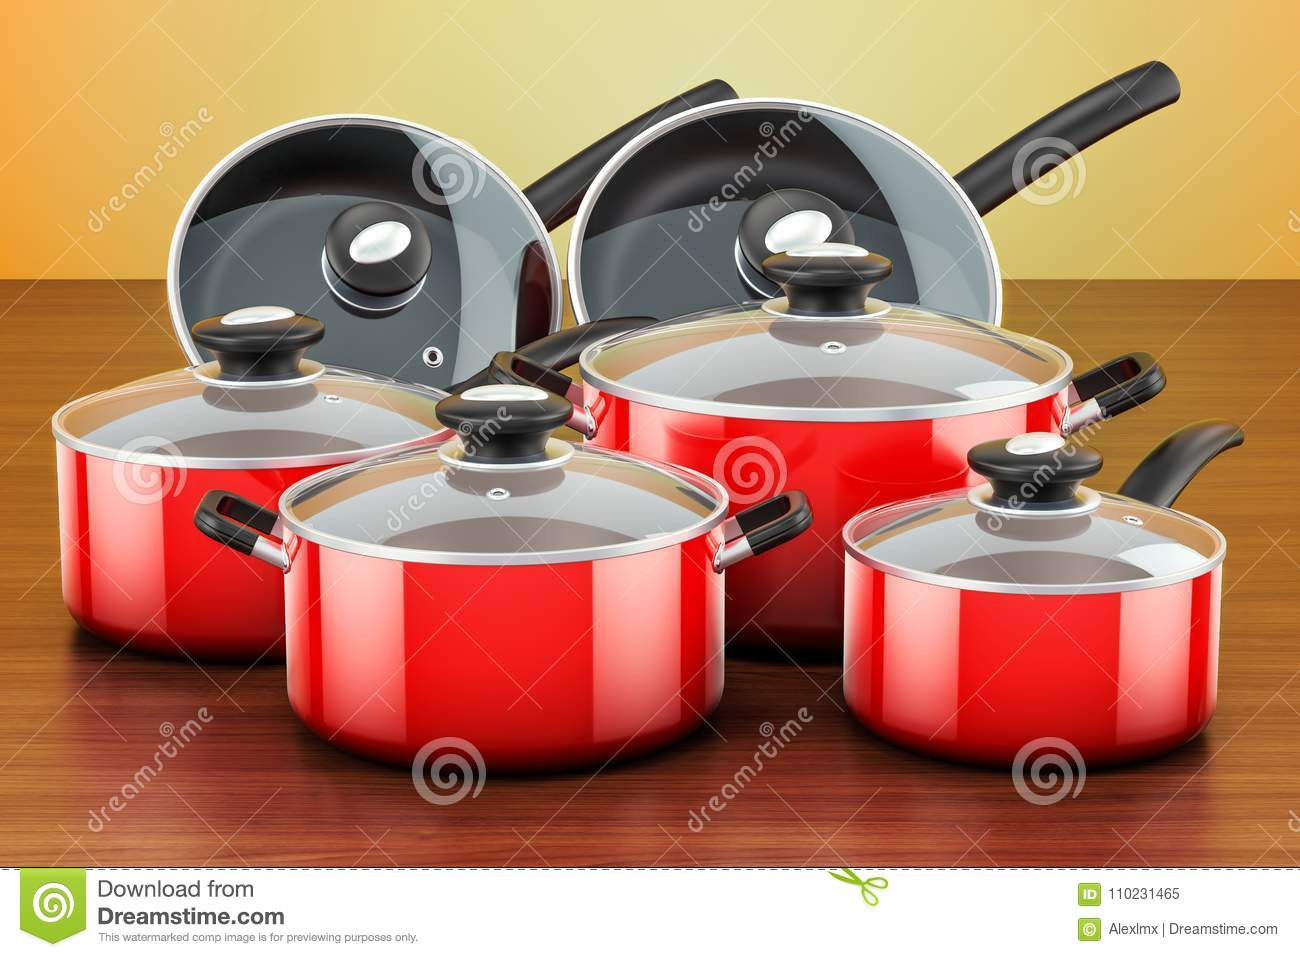 kitchen pots and pans rustic outdoor kitchens set of cooking red utensils cookware